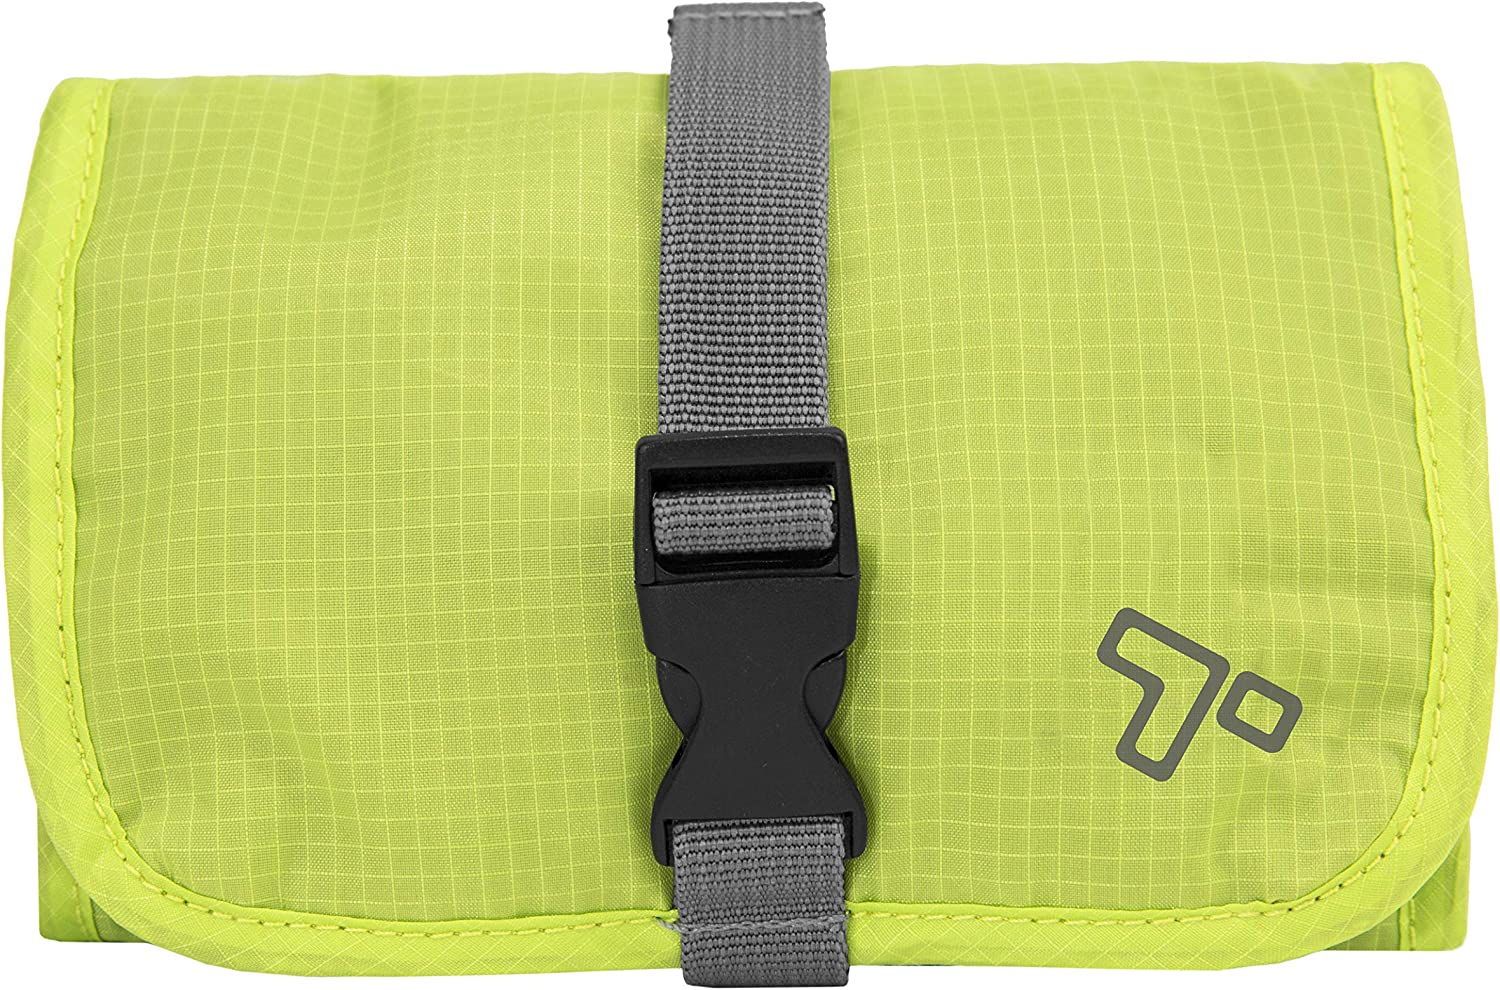   Travelon Tech Accessory Organizer, Lime, One Size   Packing Organizers